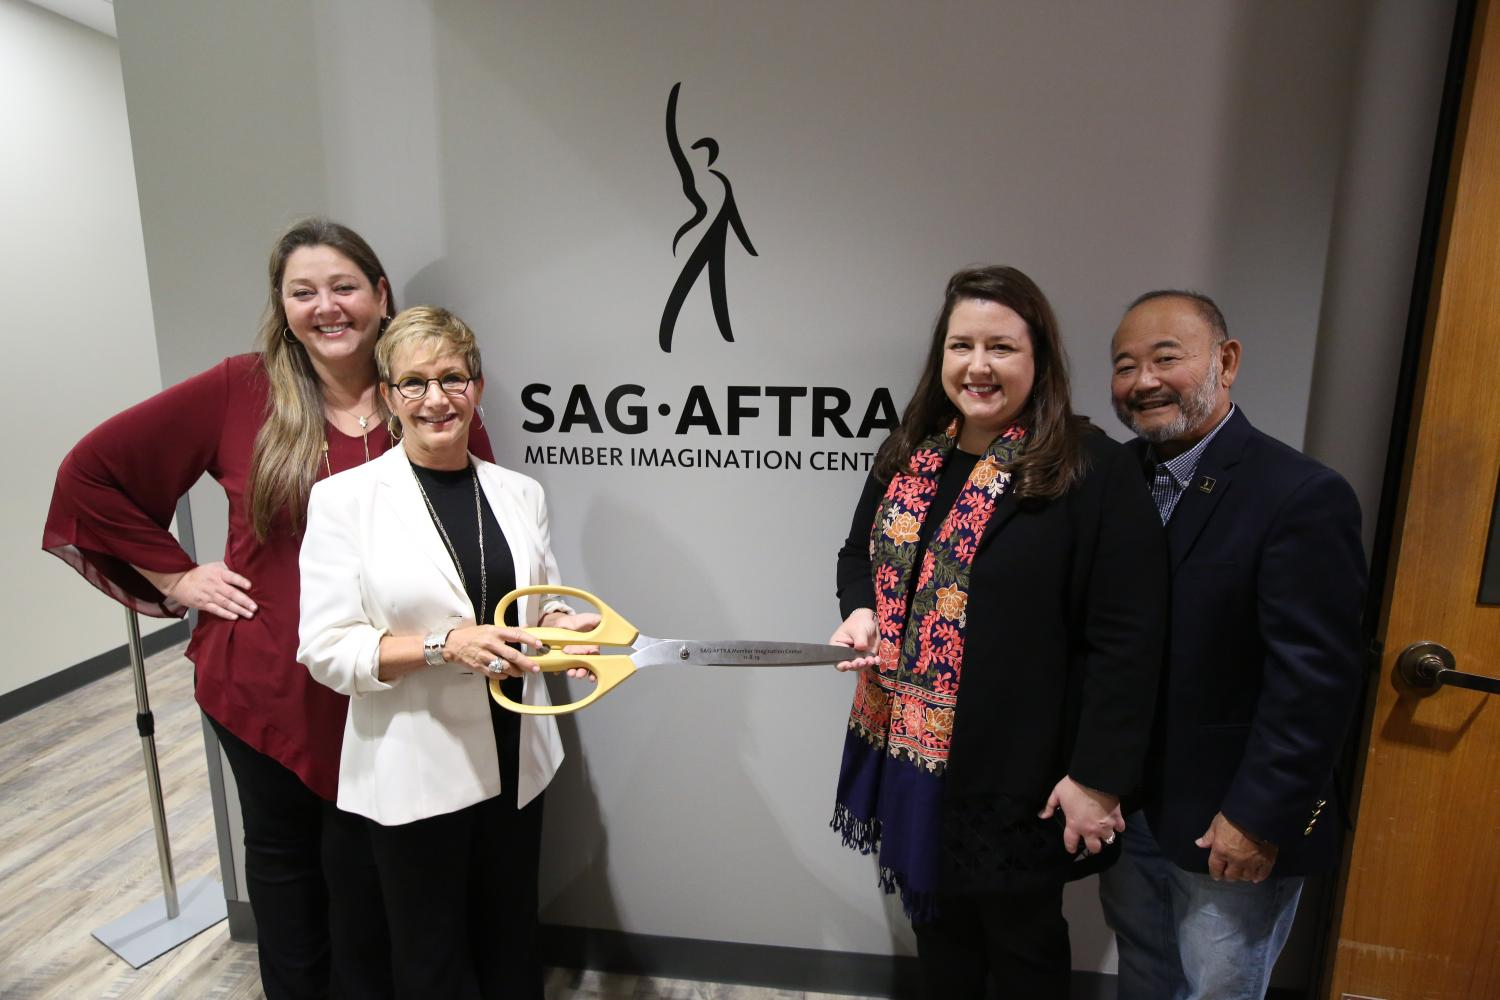 """Manheim in Maroon standing behind Carteris in black with a white blazer holding the handle of large scissors. Damon holding the opposite end of scissors wearing black and a colorful scarf with Kusatsu standing behind her. """"SAG-AFTRA Imagination Center"""""""